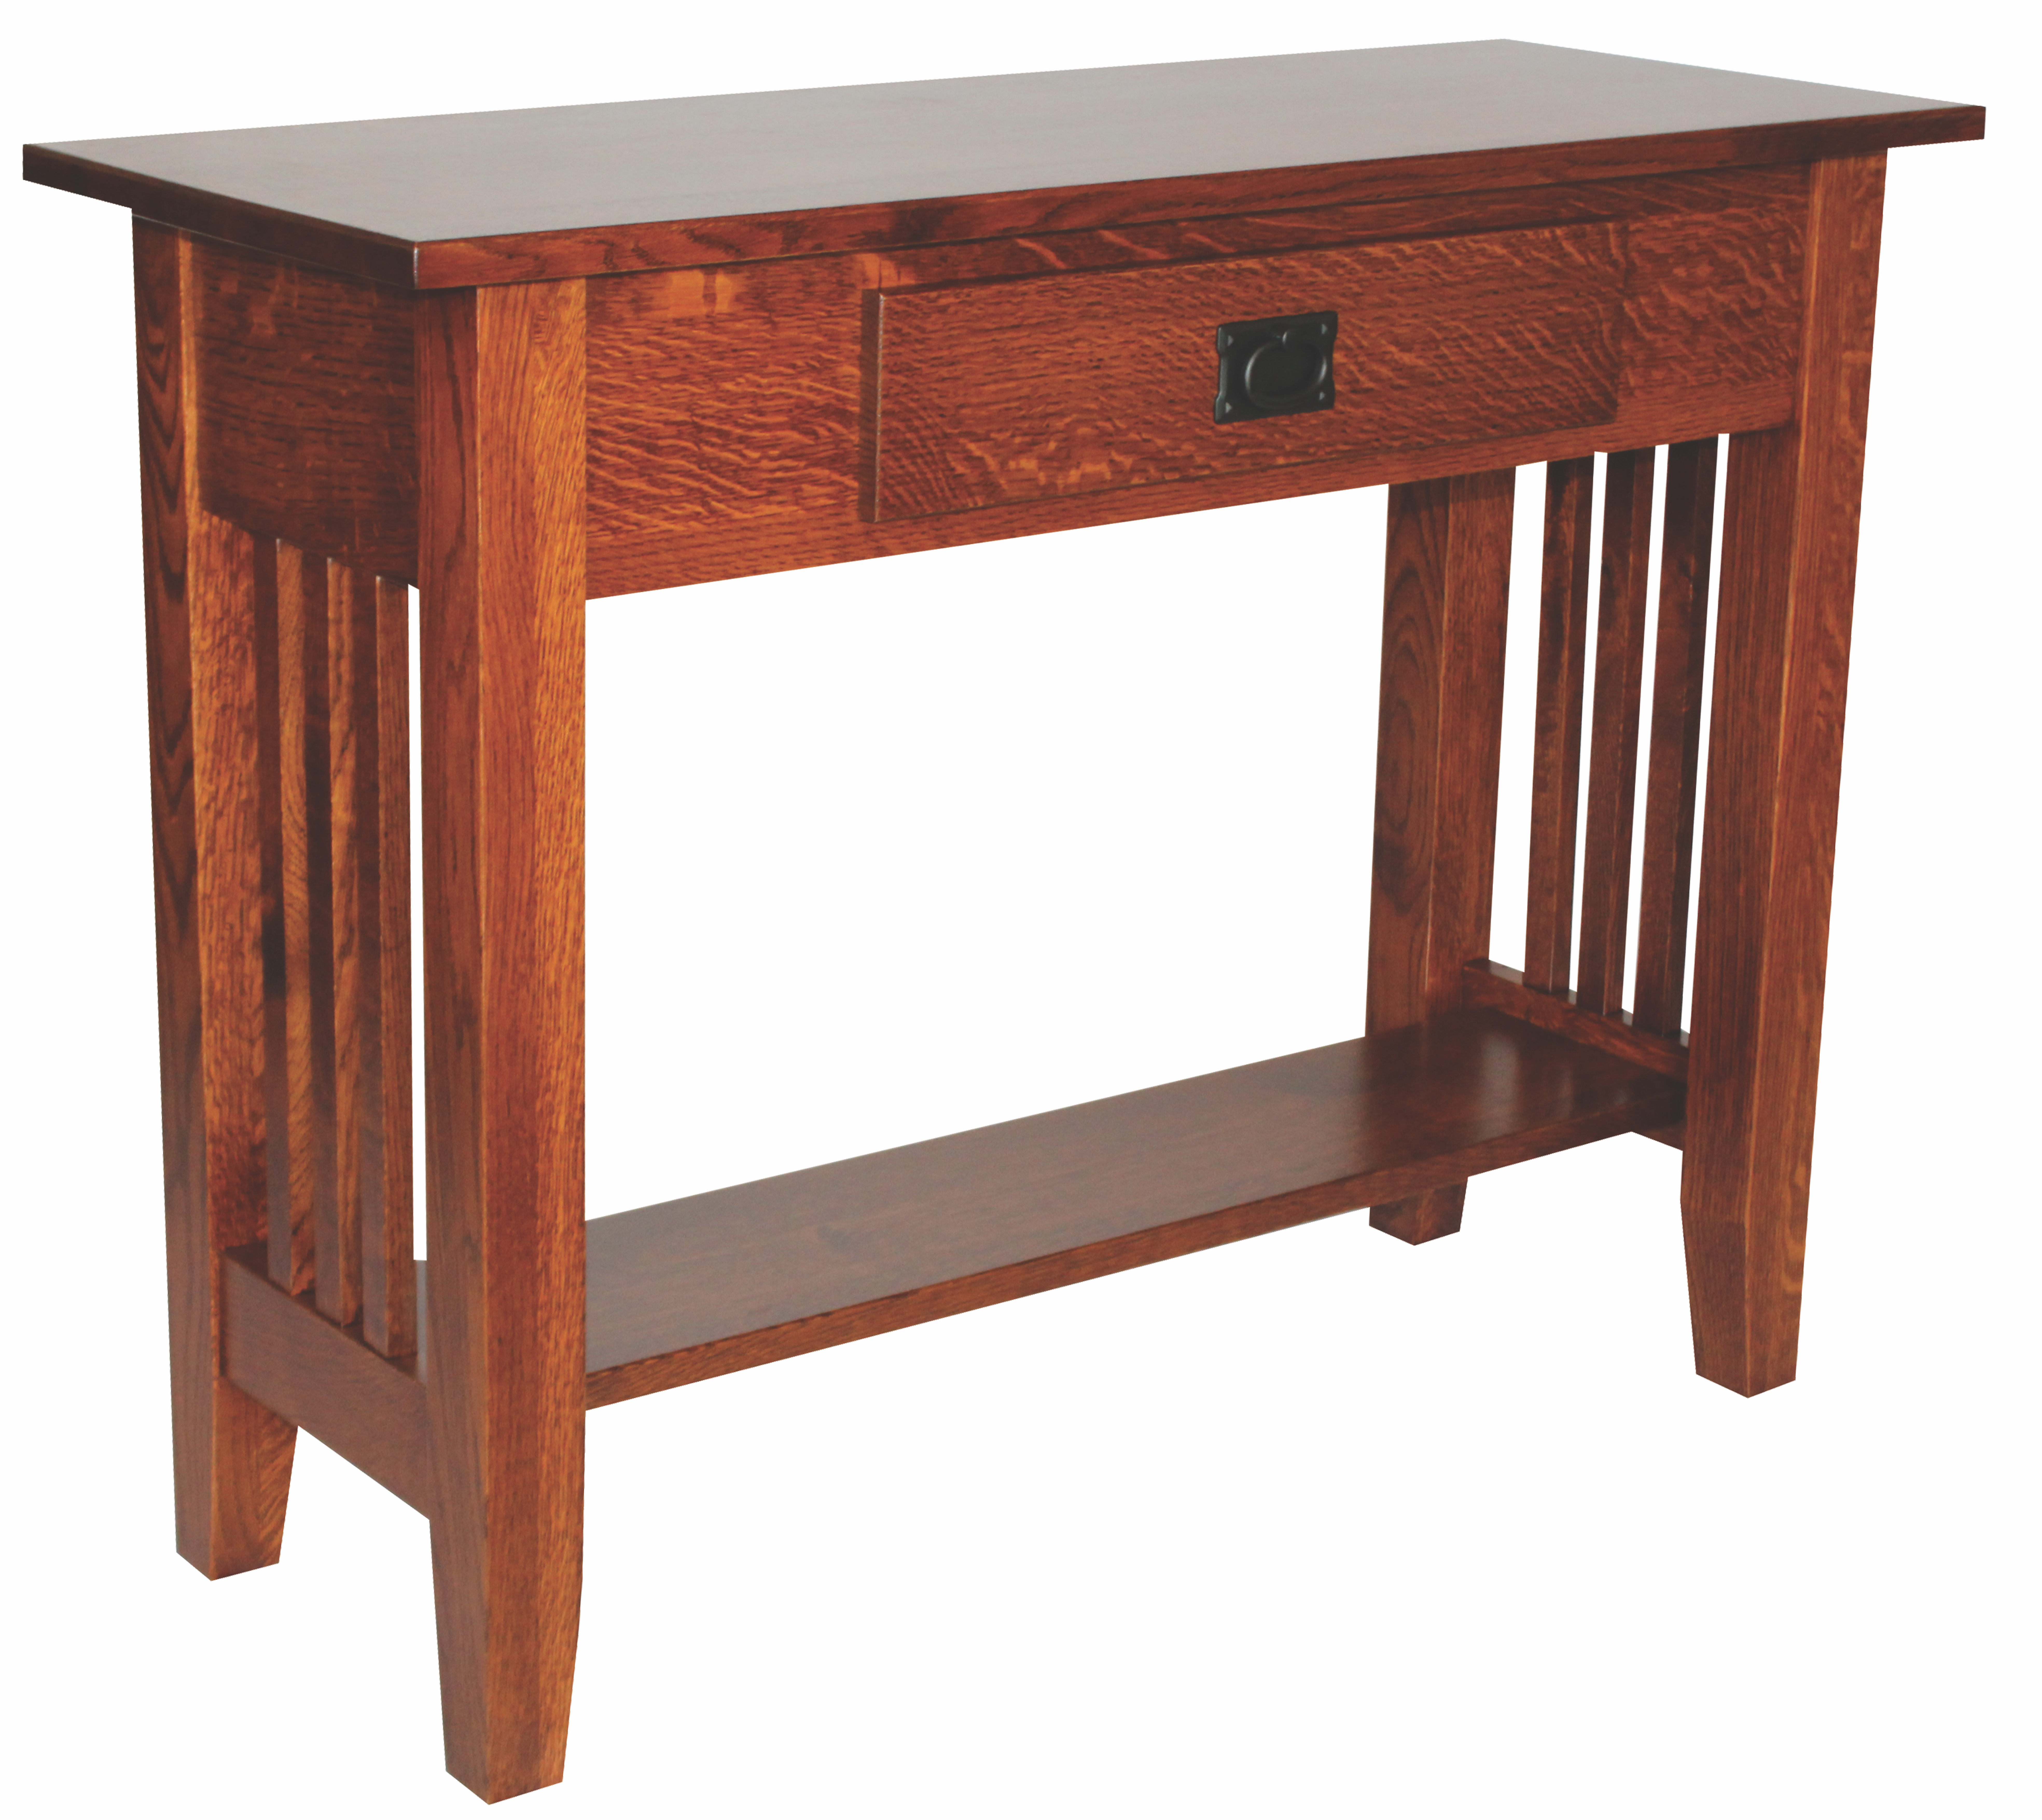 Prairie mission this oak house handcrafted furniture for Coffee tables london ontario